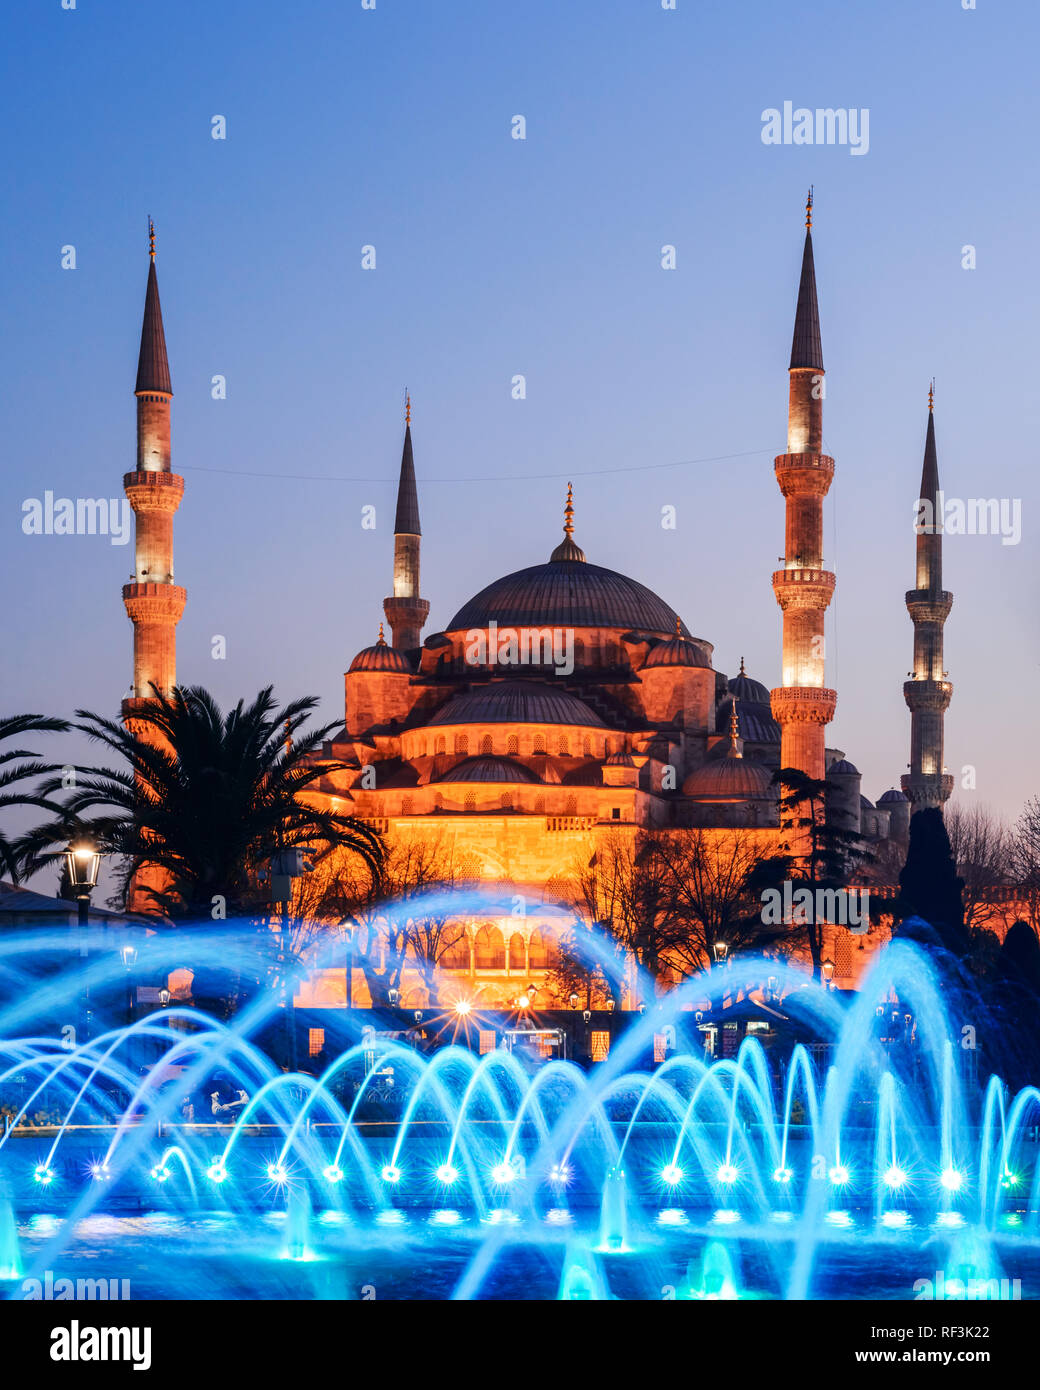 Fountain on Sultanahmet area in evening time. Multicolored streams against the background of the Blue mosque. Located place: Istambul, Turkey - Stock Image